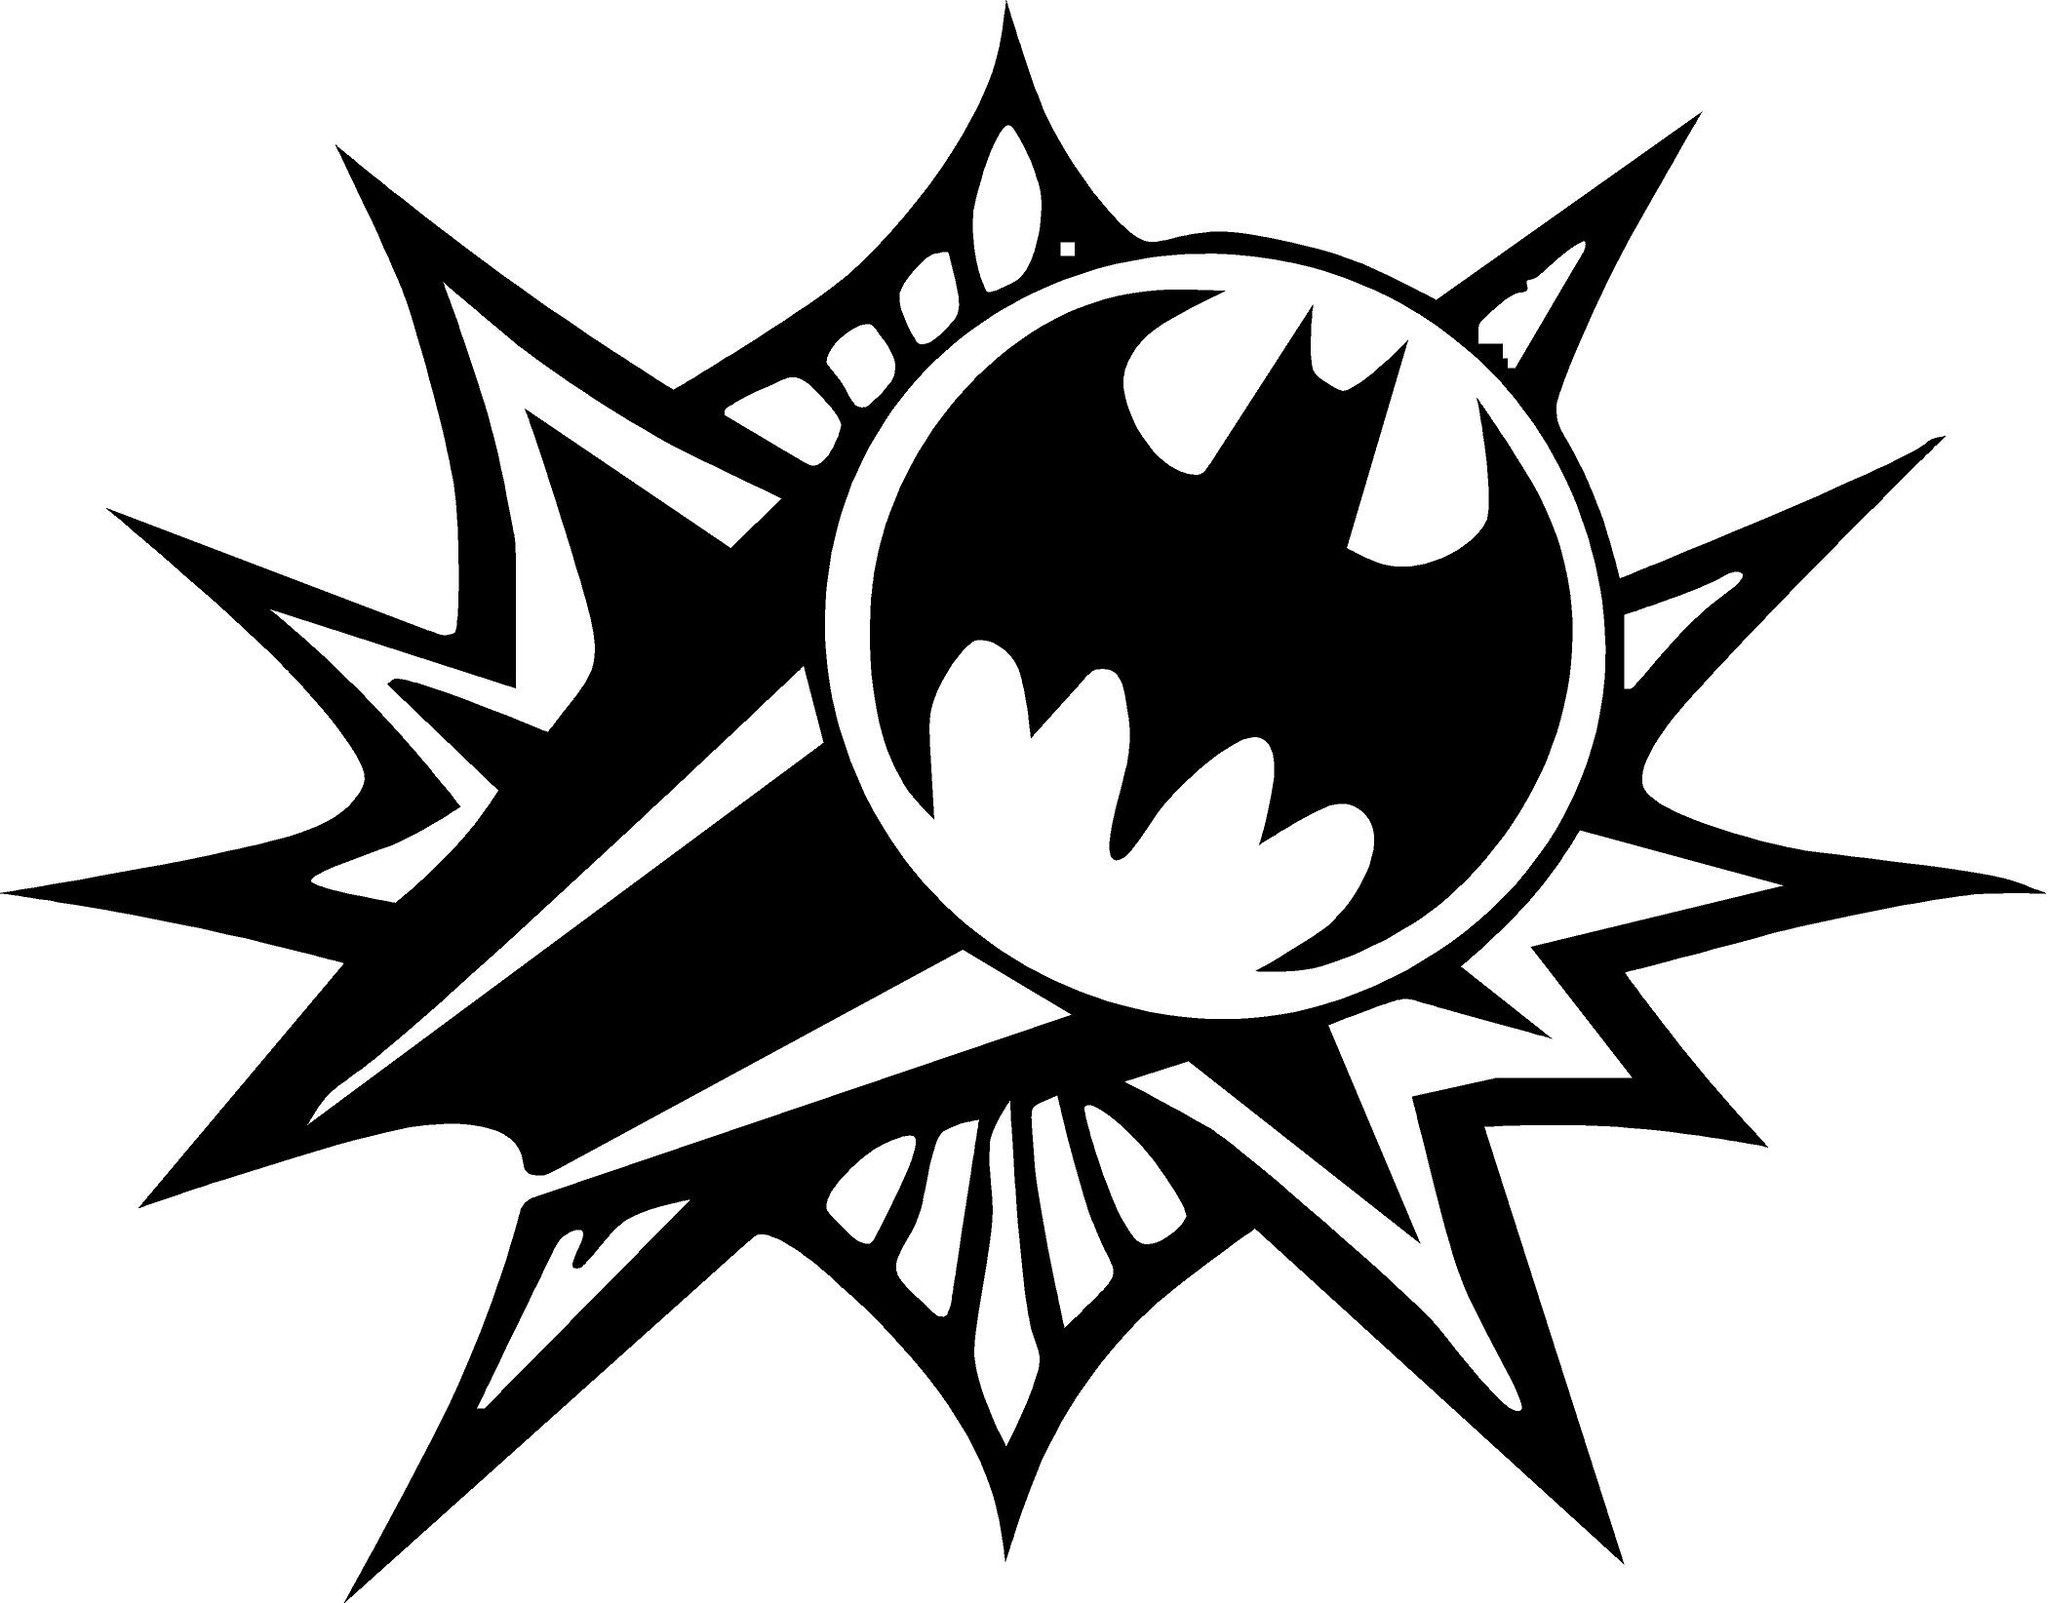 Batman Vinyl Decal measures approximately 7x5.5! Available